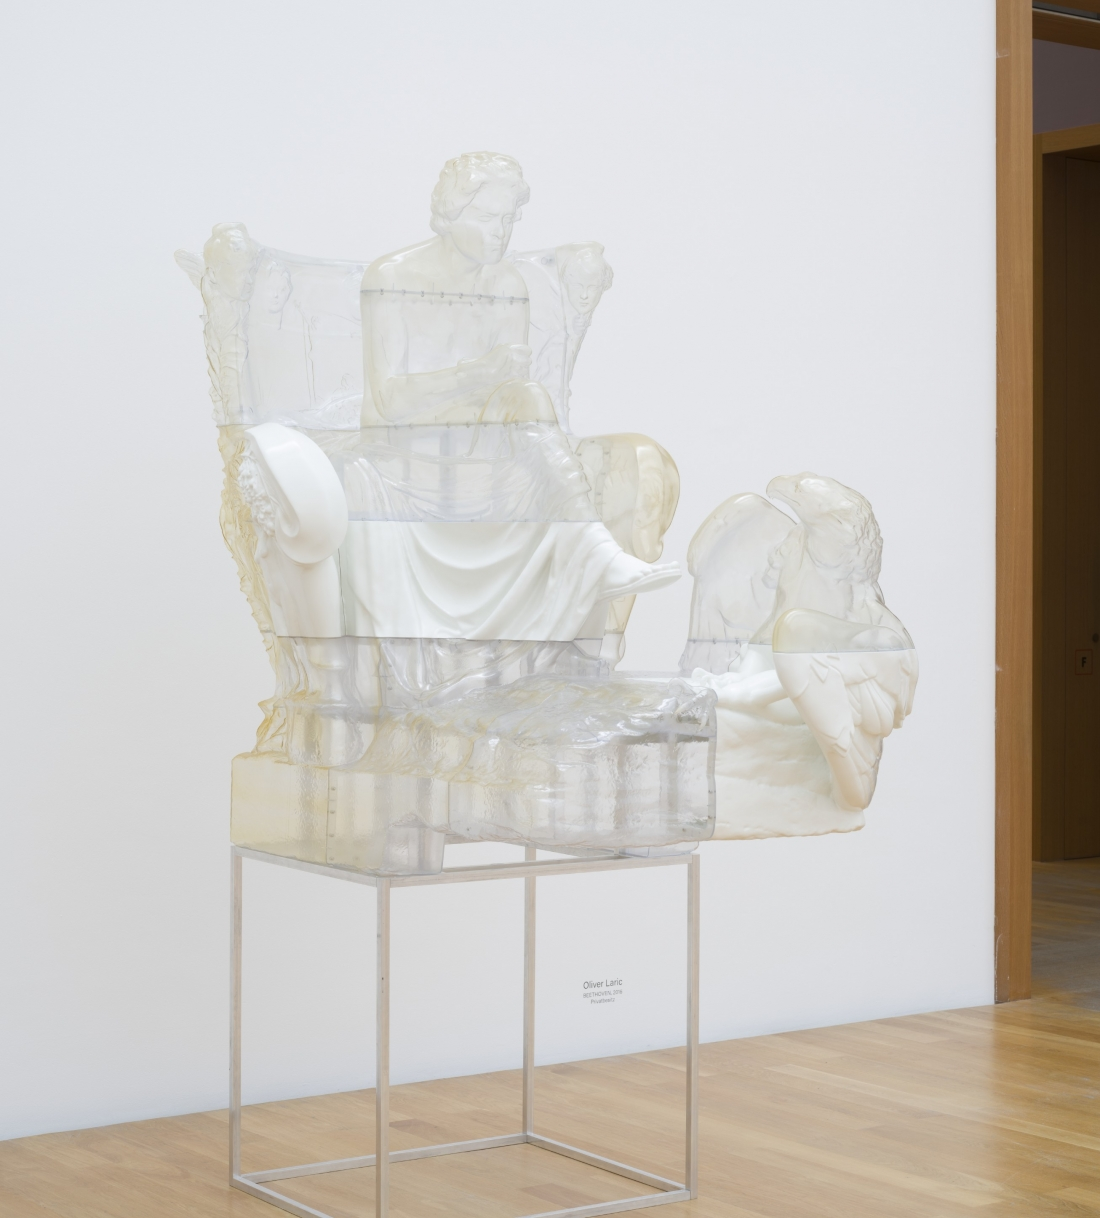 Installation view of 2017 version of Beethoven at Museum of Fine Arts Leipzig in 2020.